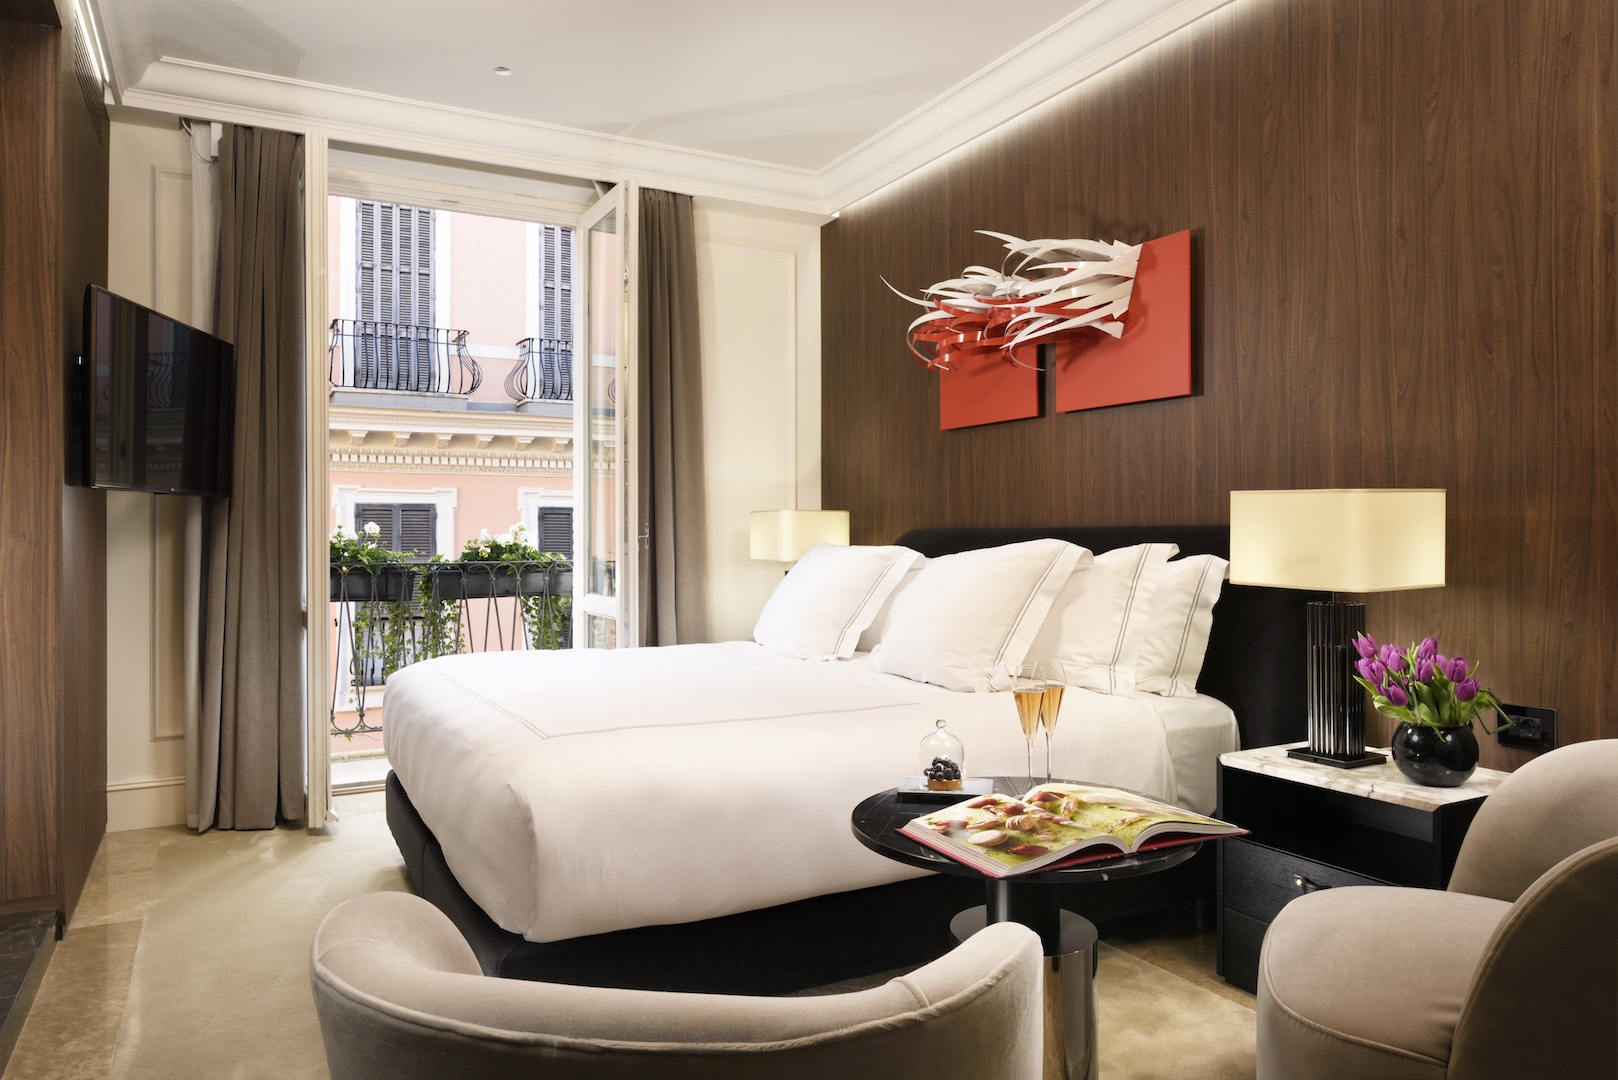 The First Roma Dolce Hotel - Prestige Room